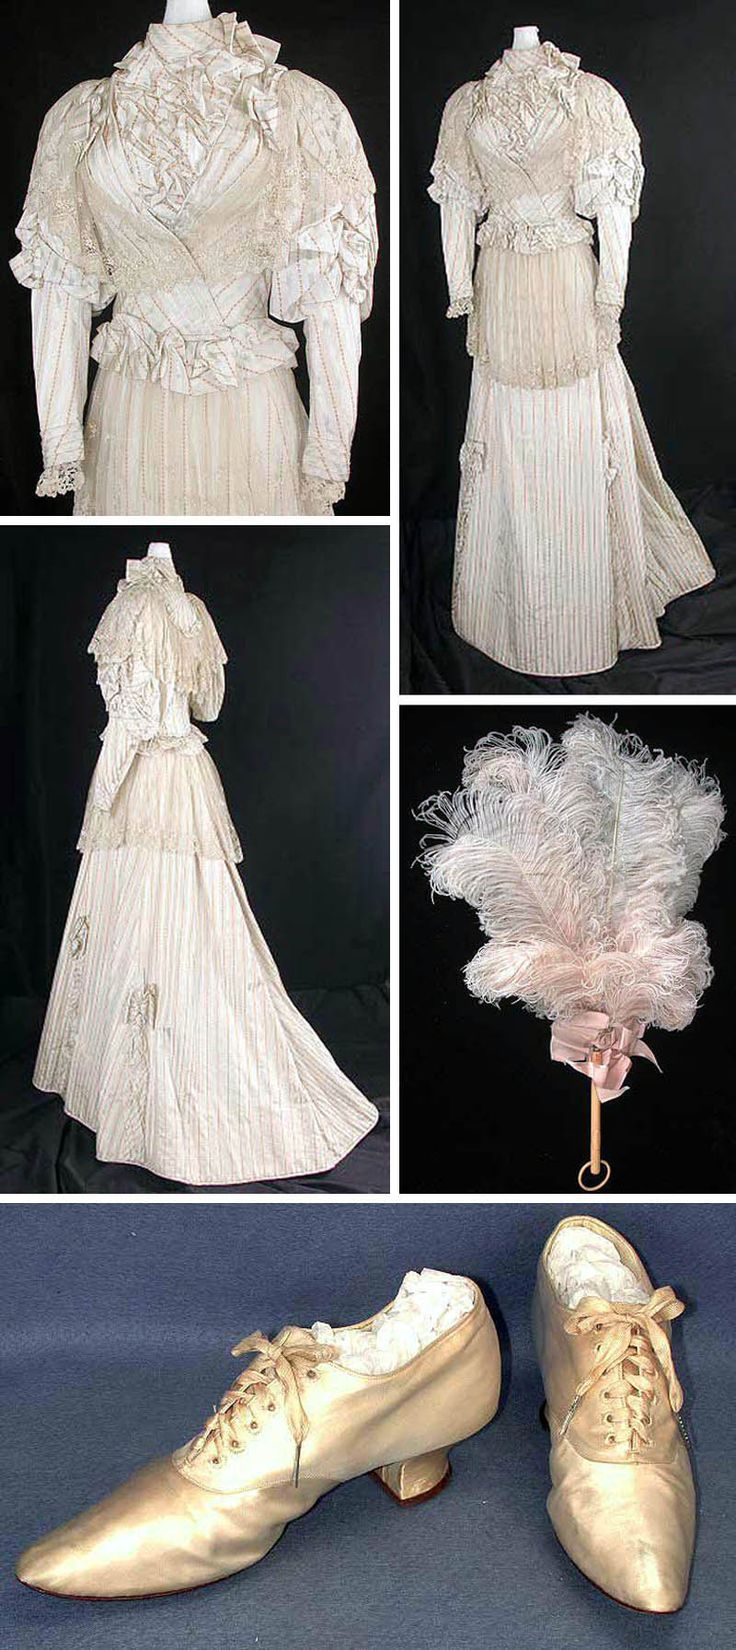 Worn by Frances E. Merrill (b. 1860) of Merton Township, Waukesha County, Wisconsin, at her wedding to Albert Rudberg, a veterinary surgeon, in 1893. The wedding probably was held in Chicago. Frances matched the fan to her off-white-, light blue-, and pink-striped wedding dress and off-white silk shoes. Wisconsin Historical Society